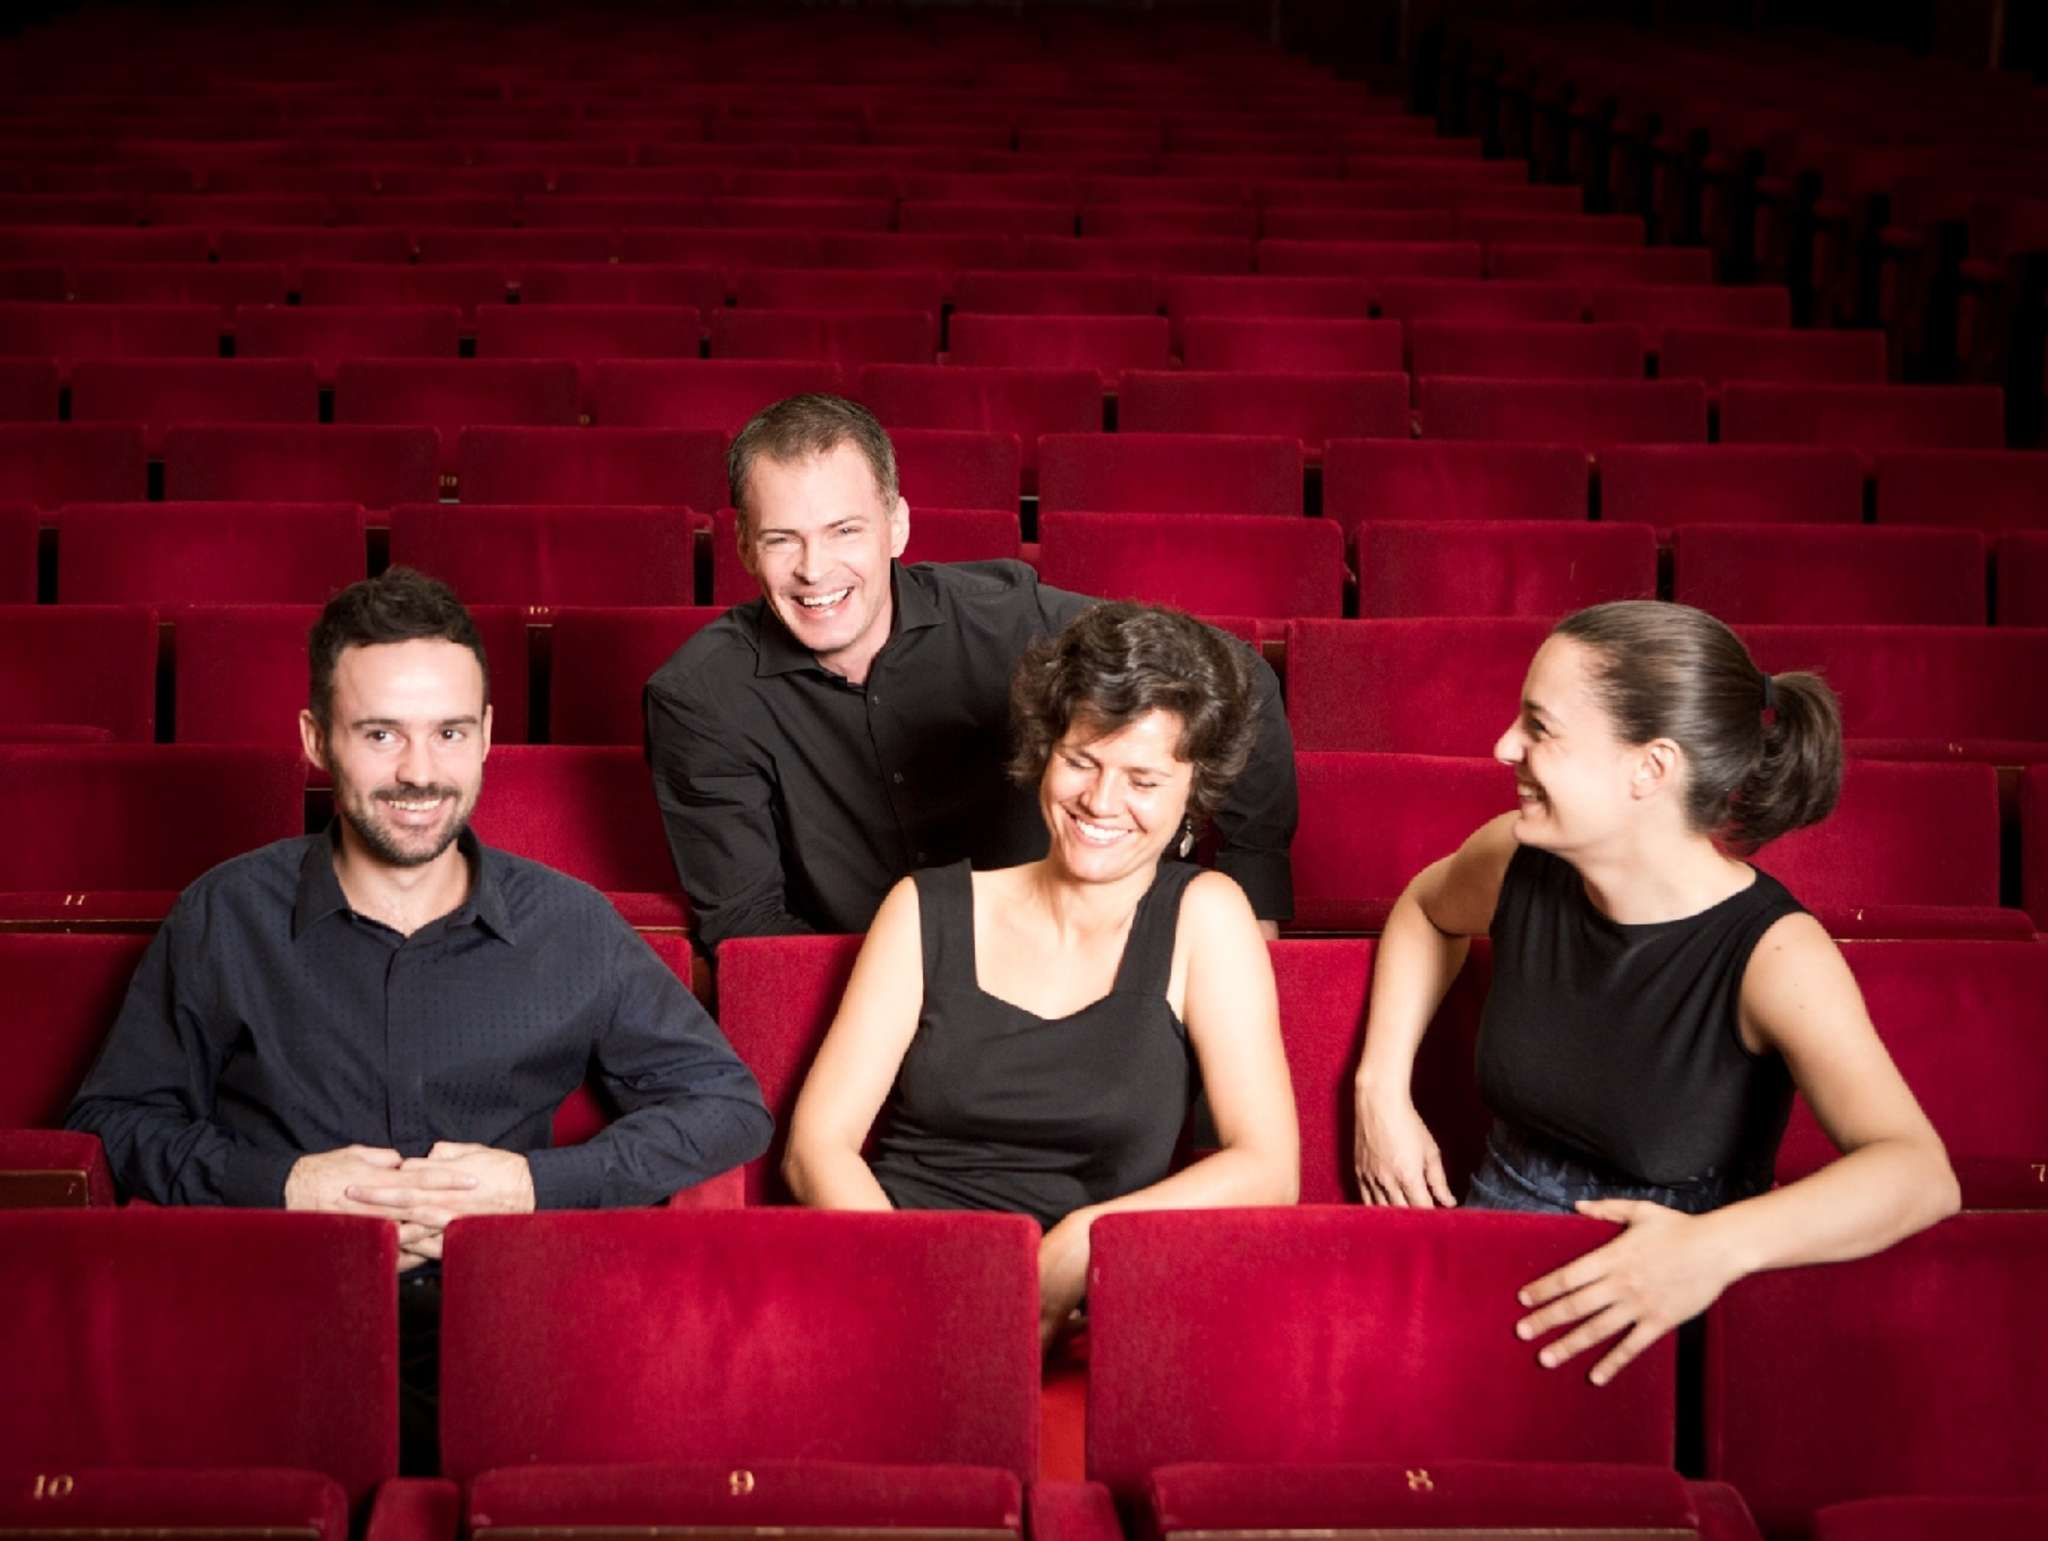 The Elias String Quartet: (from left) Donald Grant, Martin Saving, Sara Bitlloch, Marie Bitlloch.